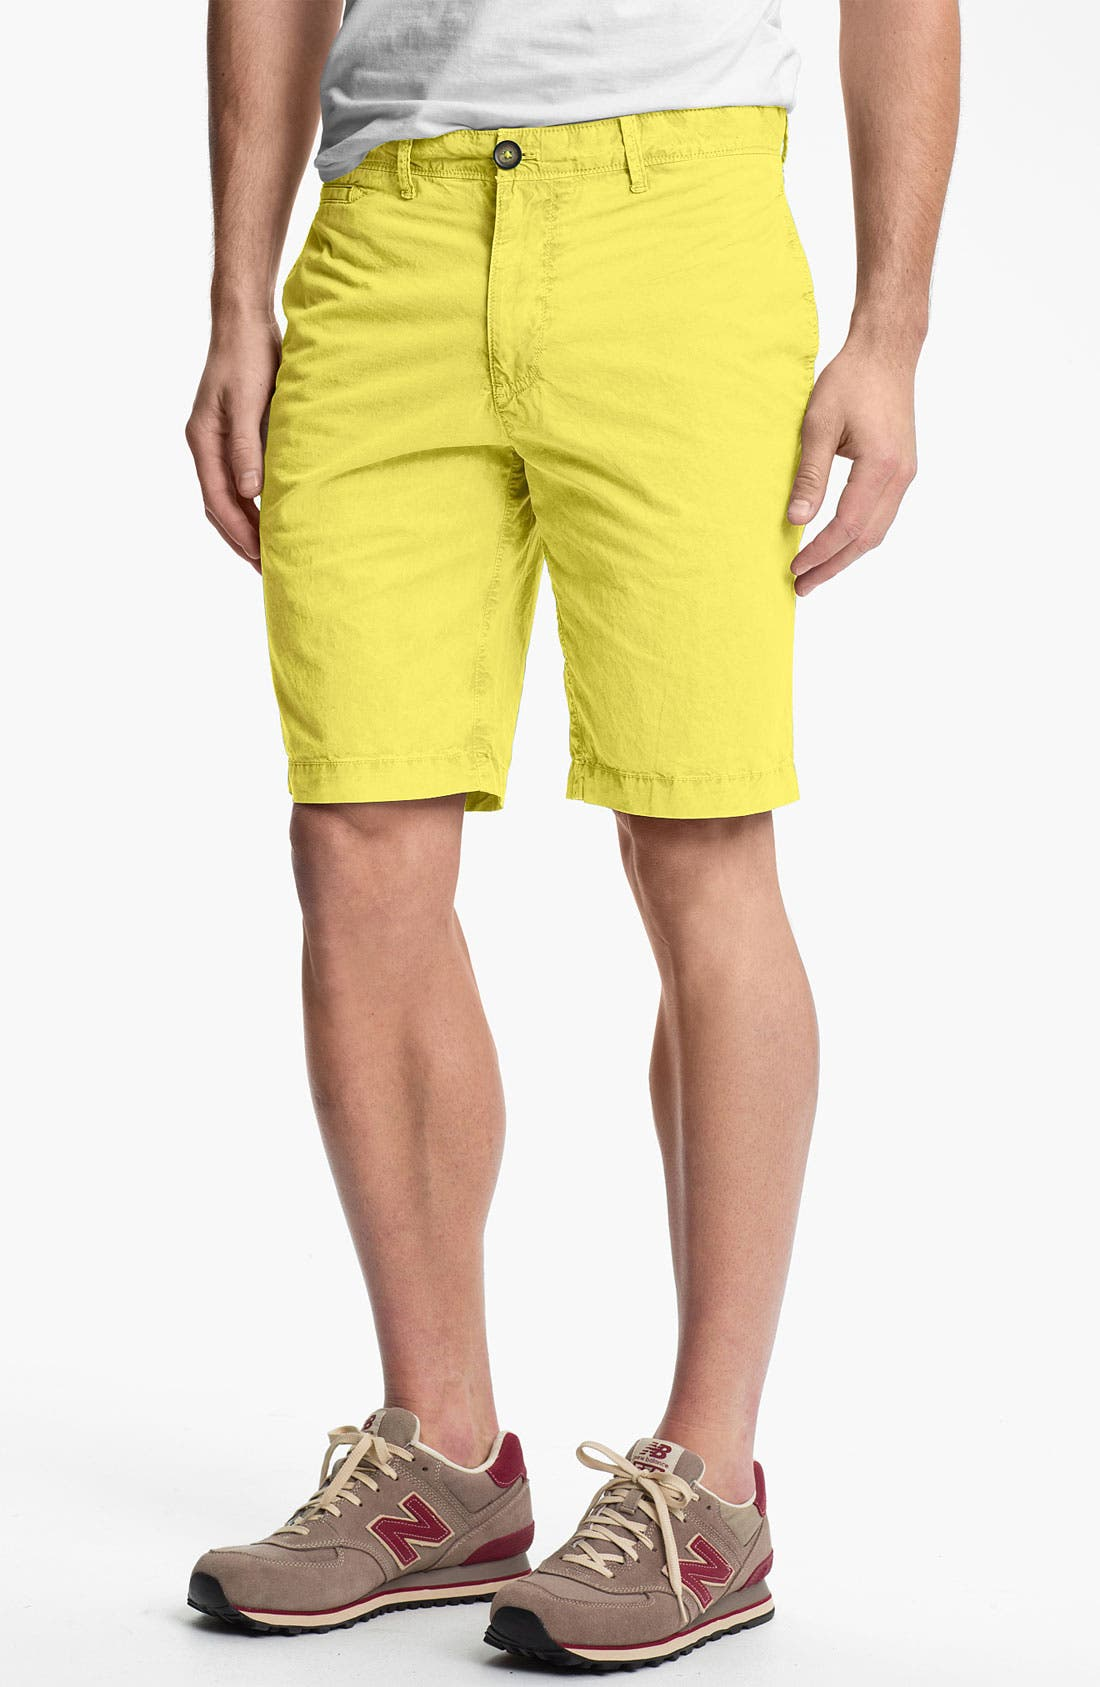 Alternate Image 1 Selected - Original Penguin Garment Dyed Shorts